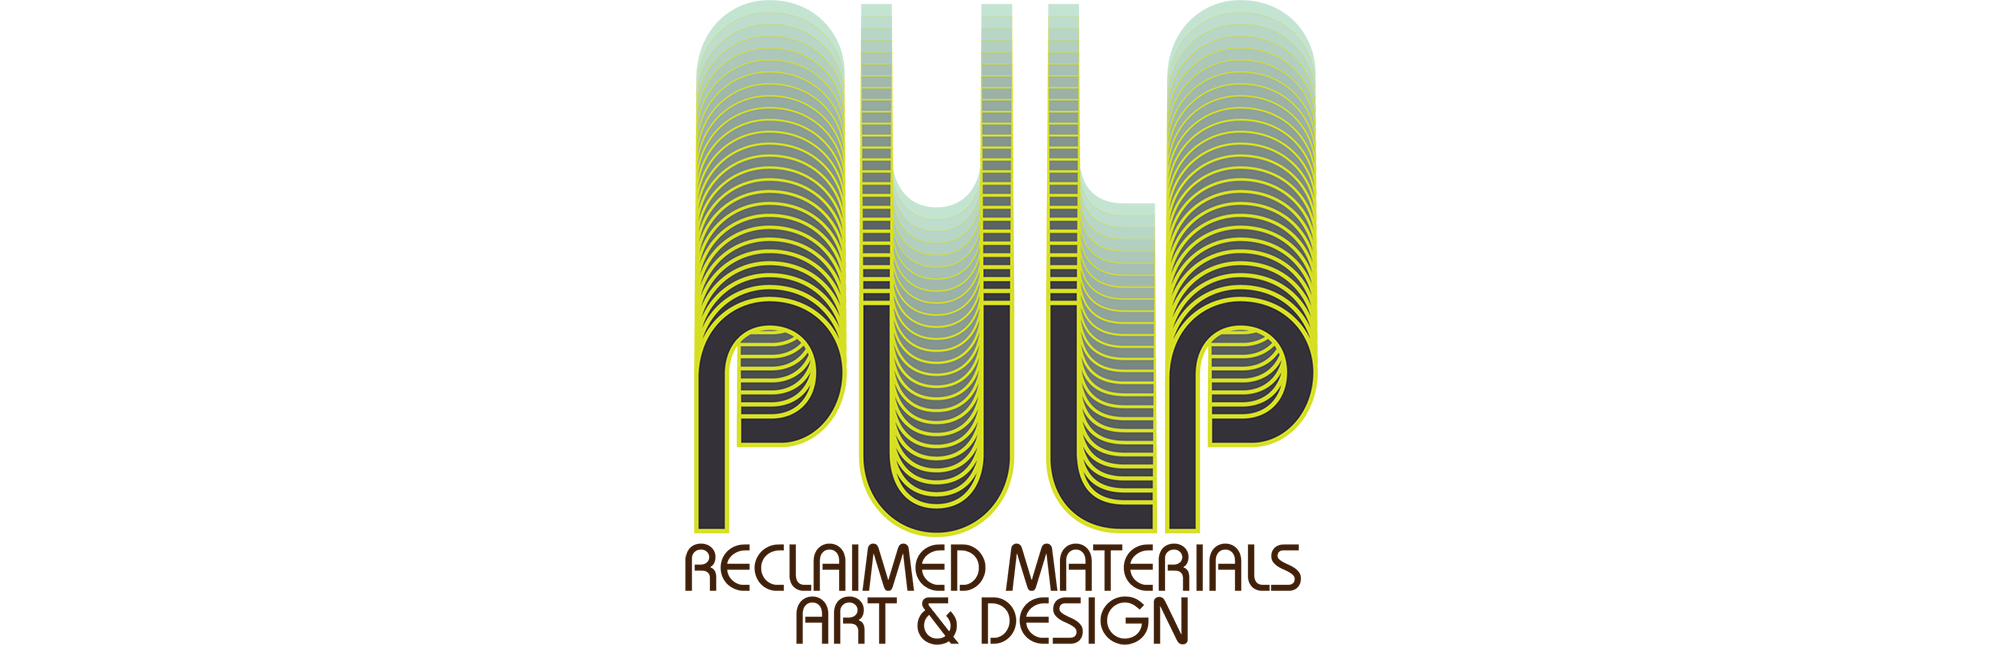 pulp-logo-for-tickets